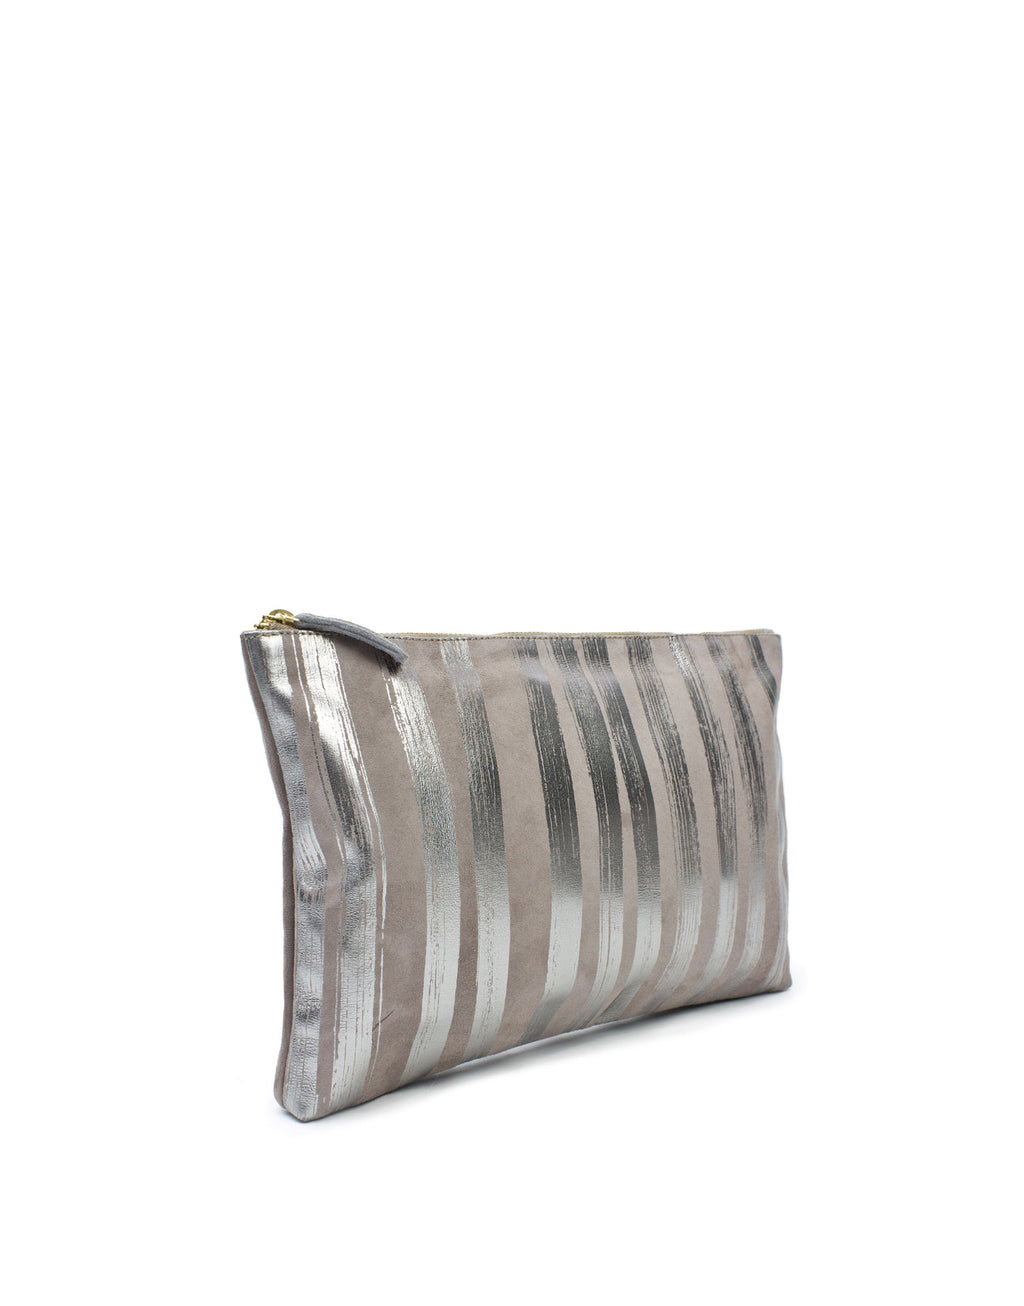 Georgina Goodman soft leather medium design pouch. Simply wear alone as a clutch or use to keep smaller items safe in a large bag by day. This is amazing and useful currently one of a kind leather bag.